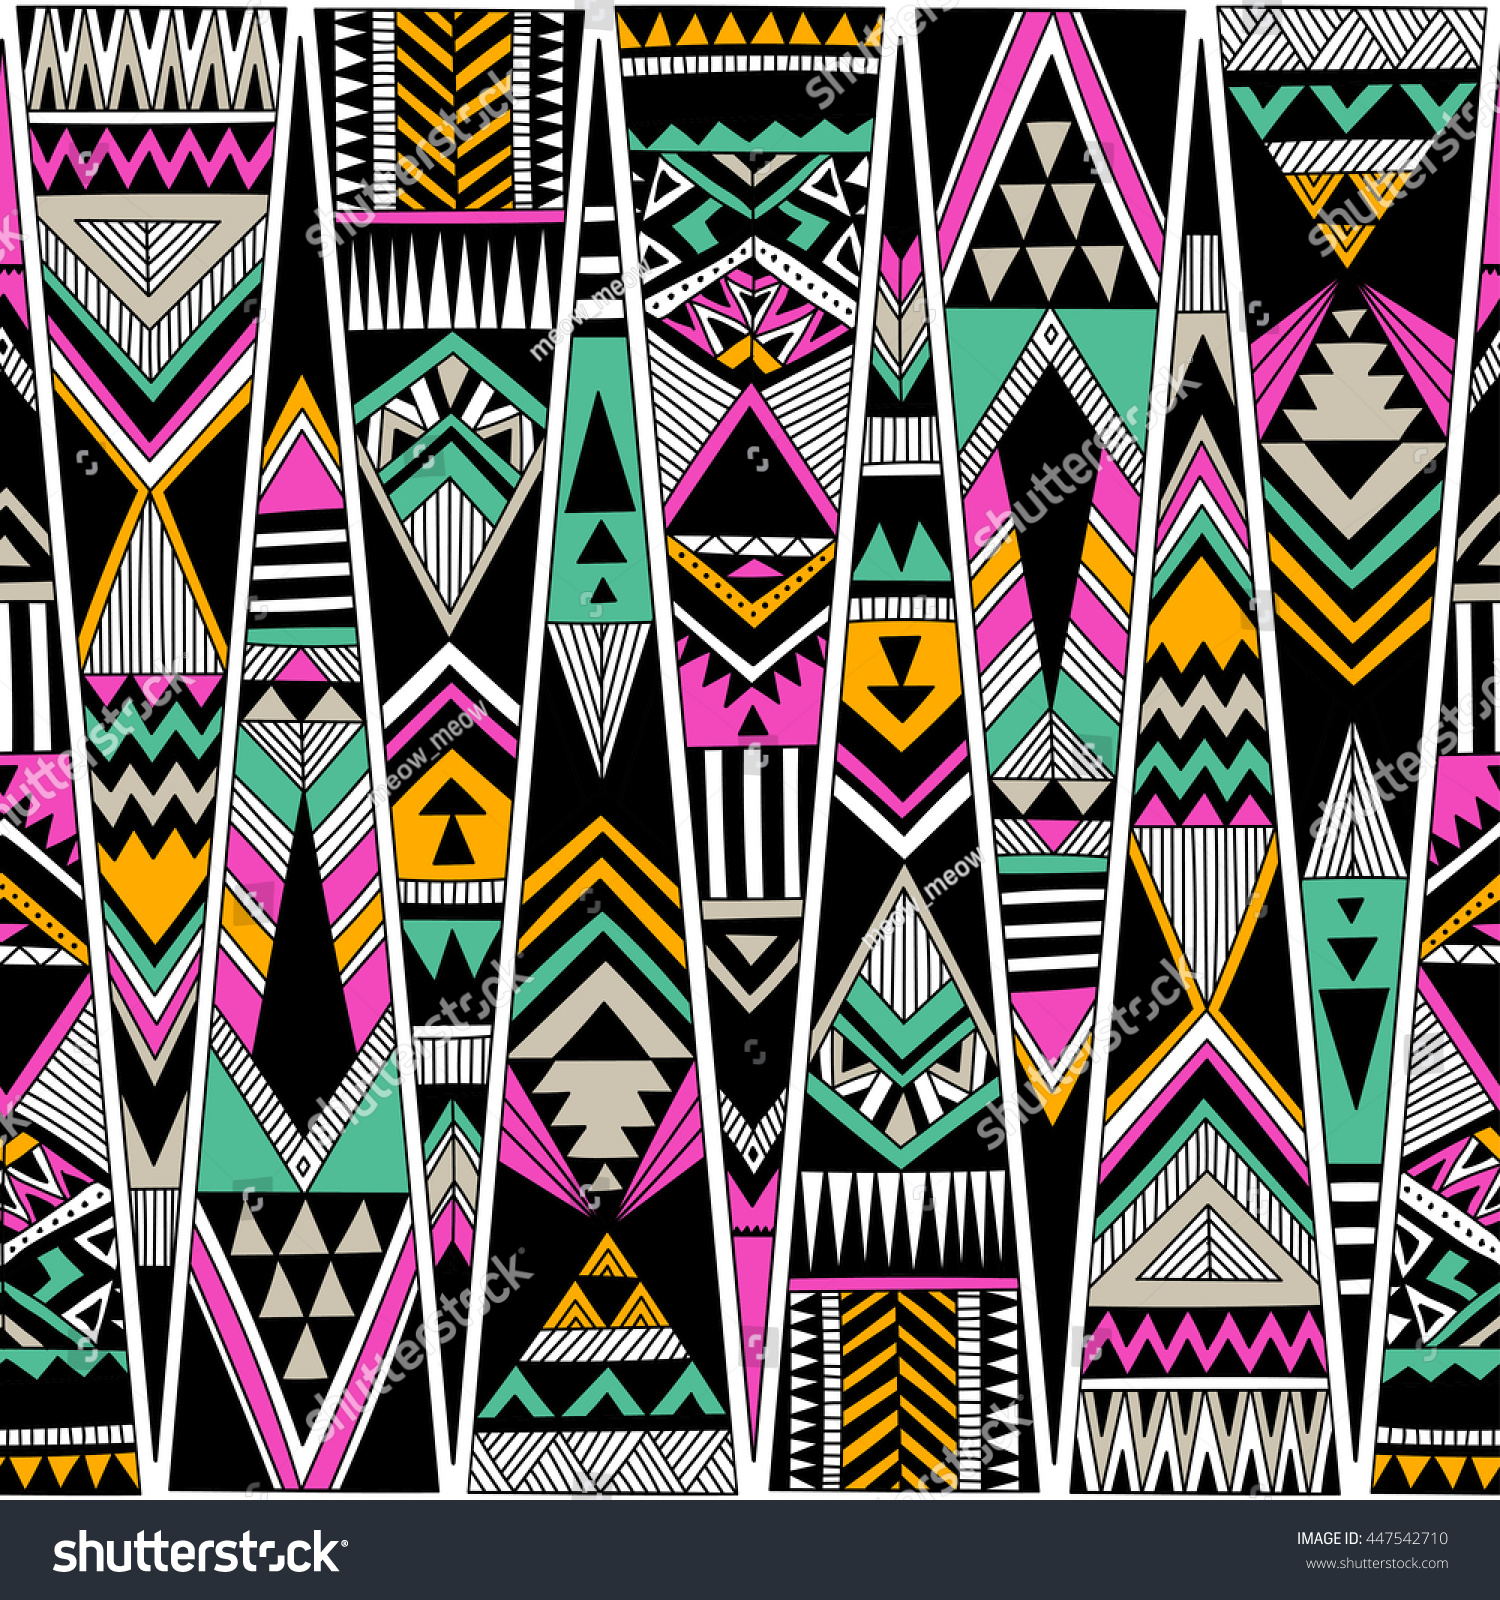 Background geometric mexican patterns seamless vector zigzag maya - Multicolor Tribal Navajo Vector Seamless Pattern Aztec Fancy Abstract Geometric Art Print Ethnic Hipster